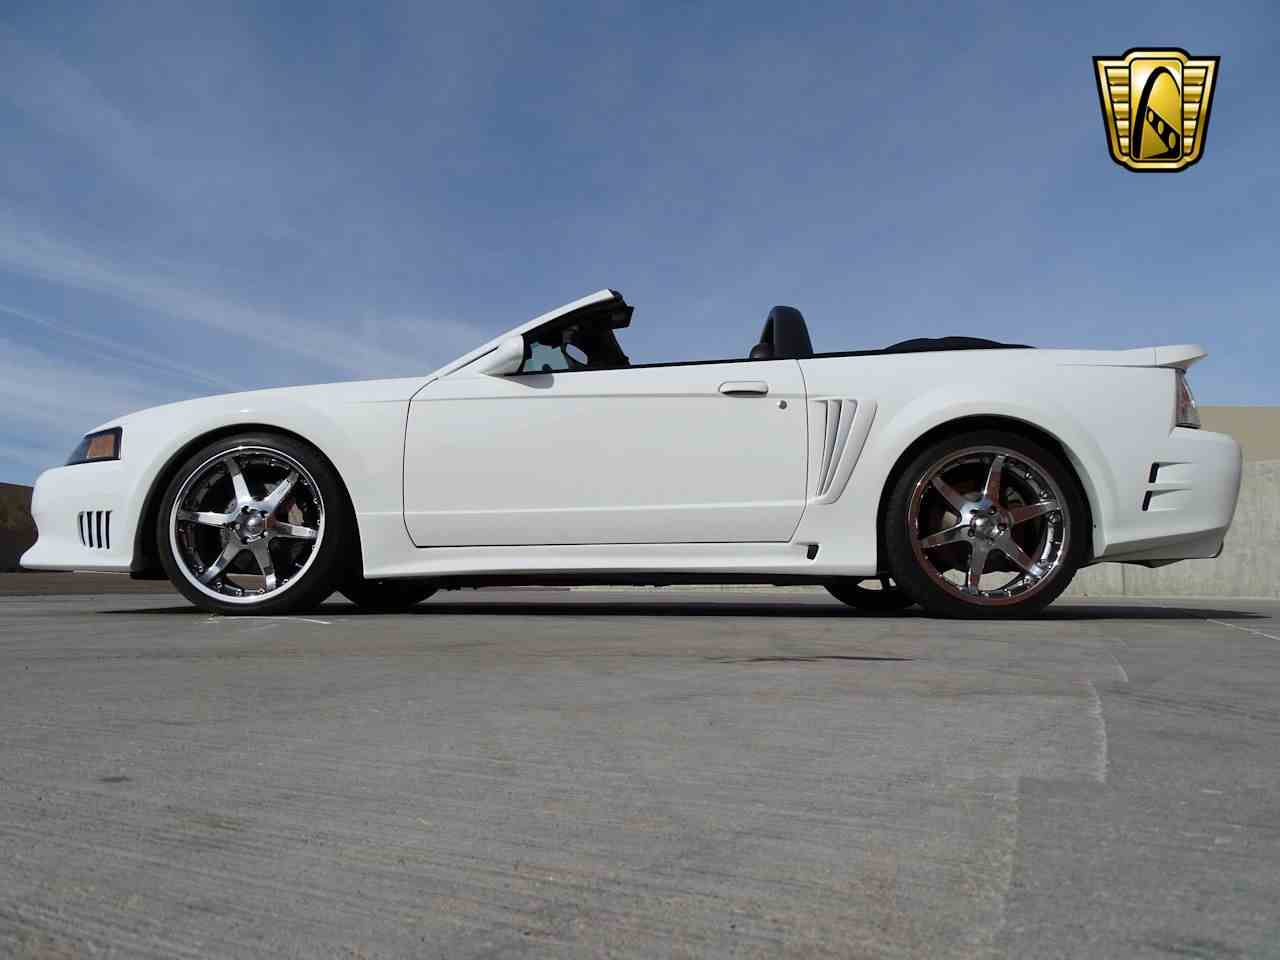 Large Picture of '02 Ford Mustang located in Deer Valley Arizona - $34,995.00 Offered by Gateway Classic Cars - Scottsdale - MZG0